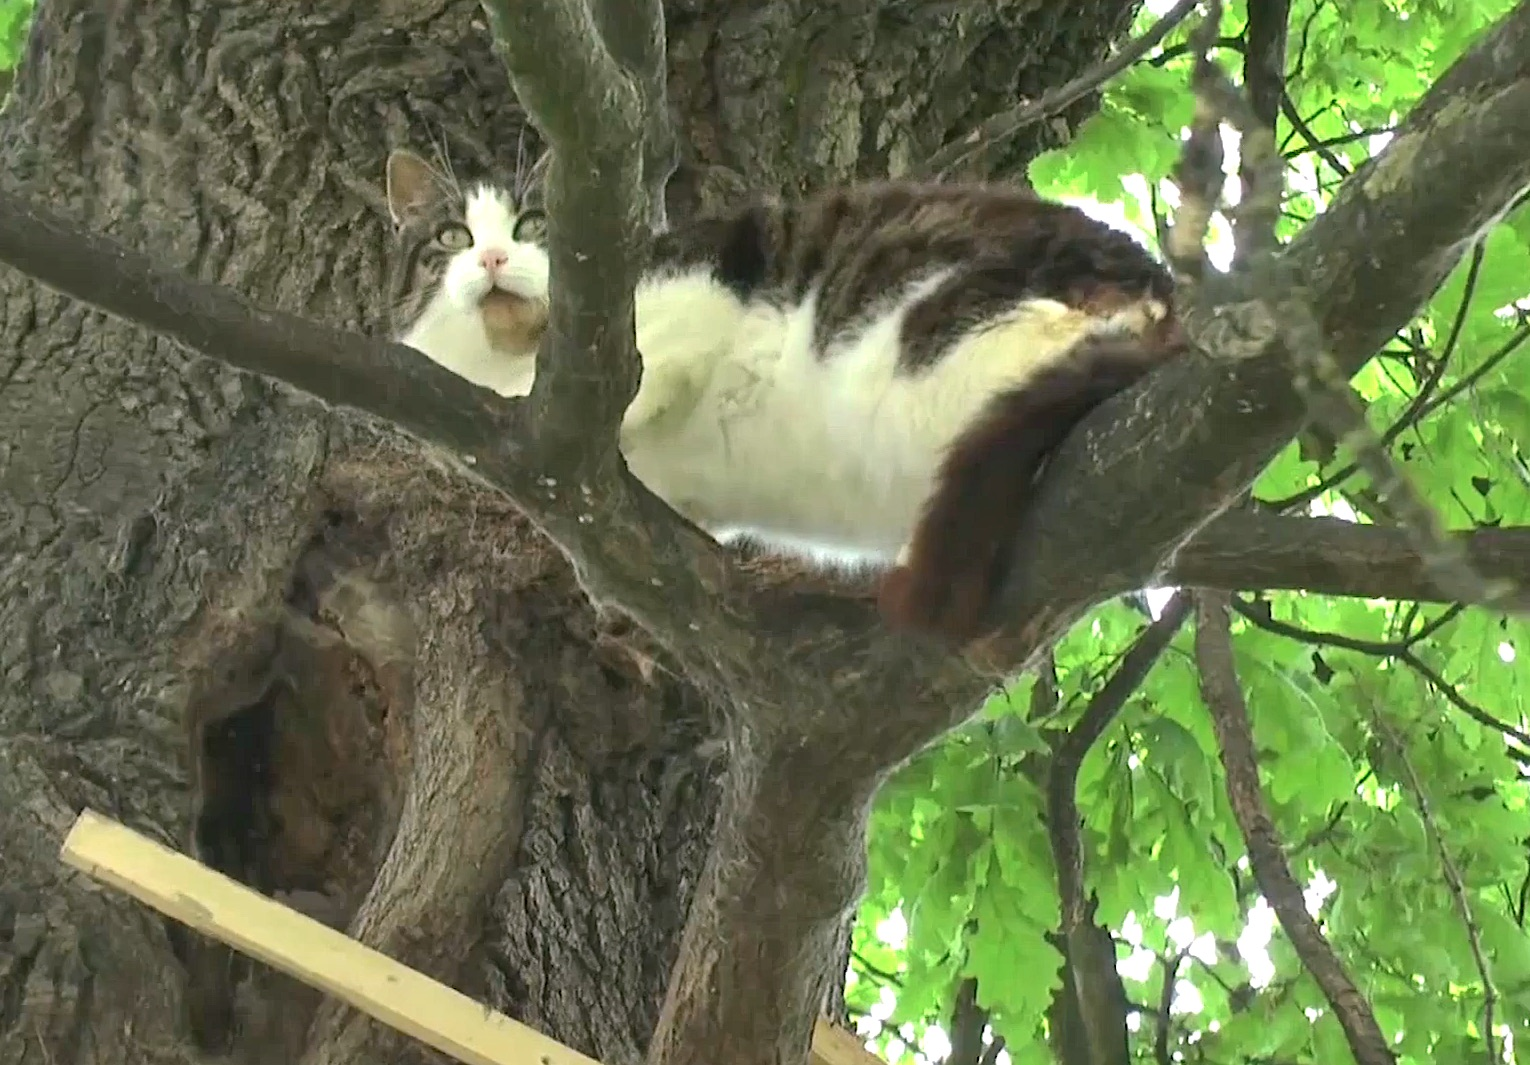 cat-up-tree-for-6-years-3.jpg